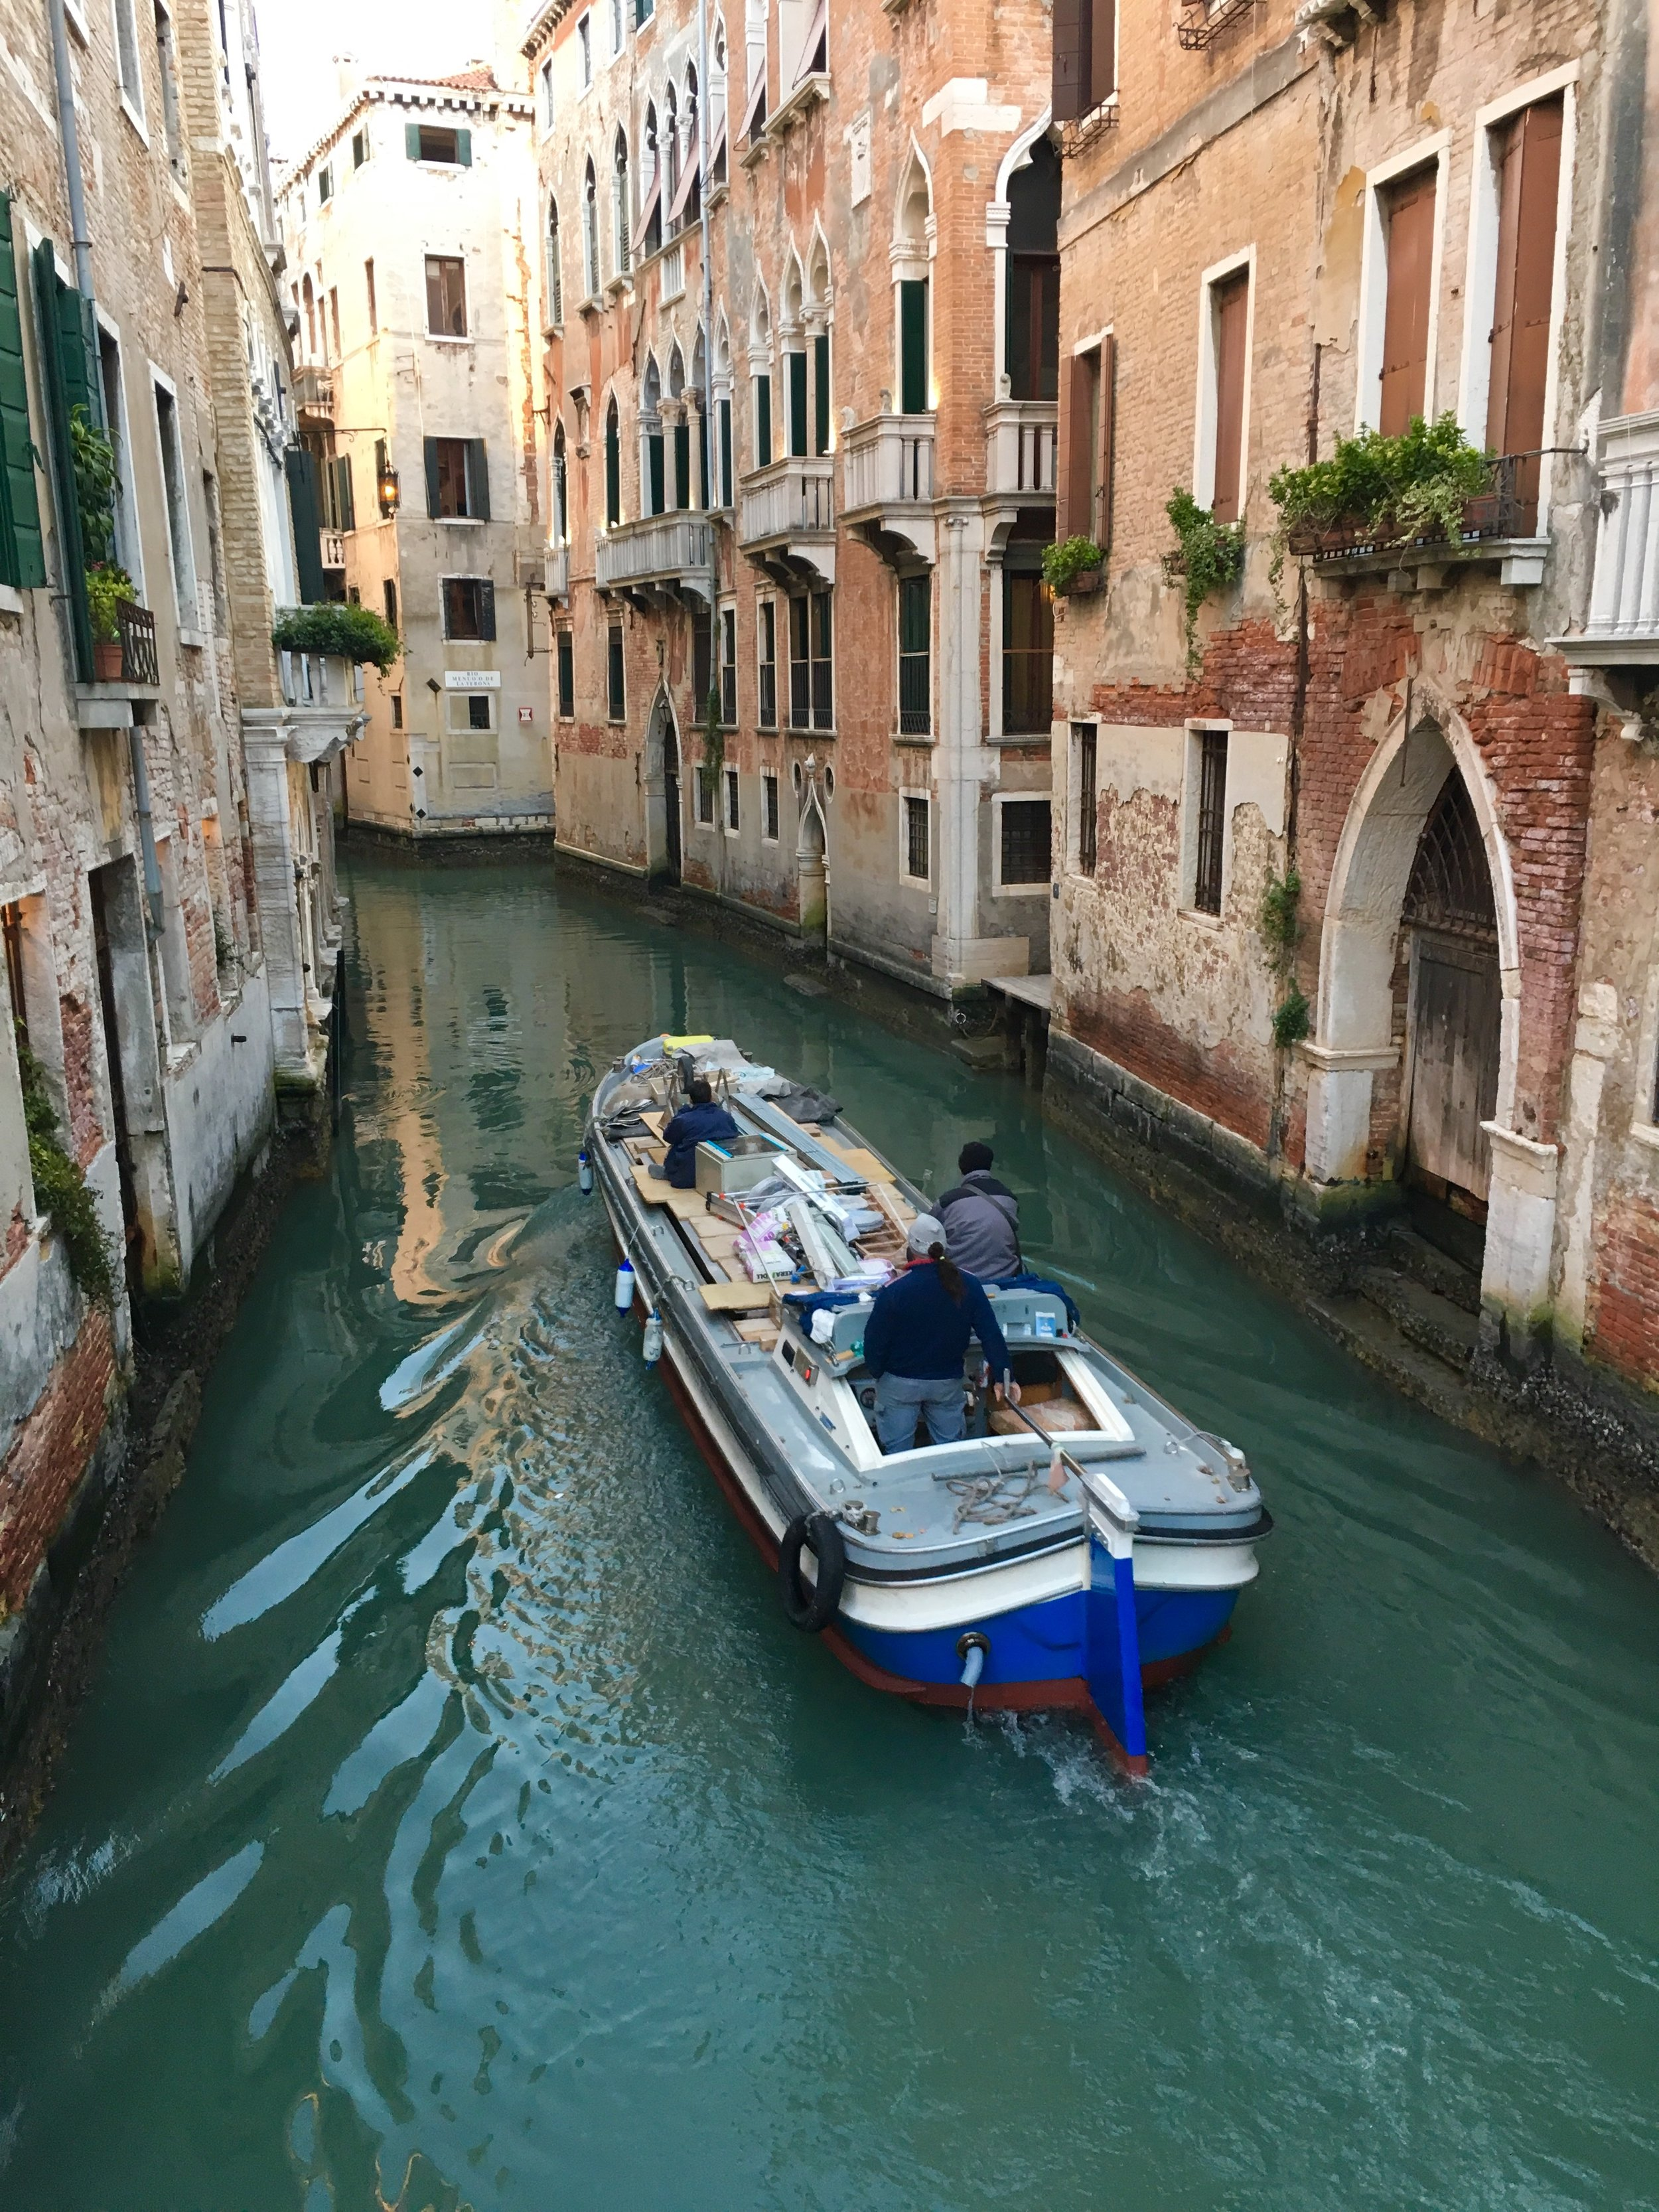 There are no cars allowed in Venice, so even the construction workers have to get around by boat!